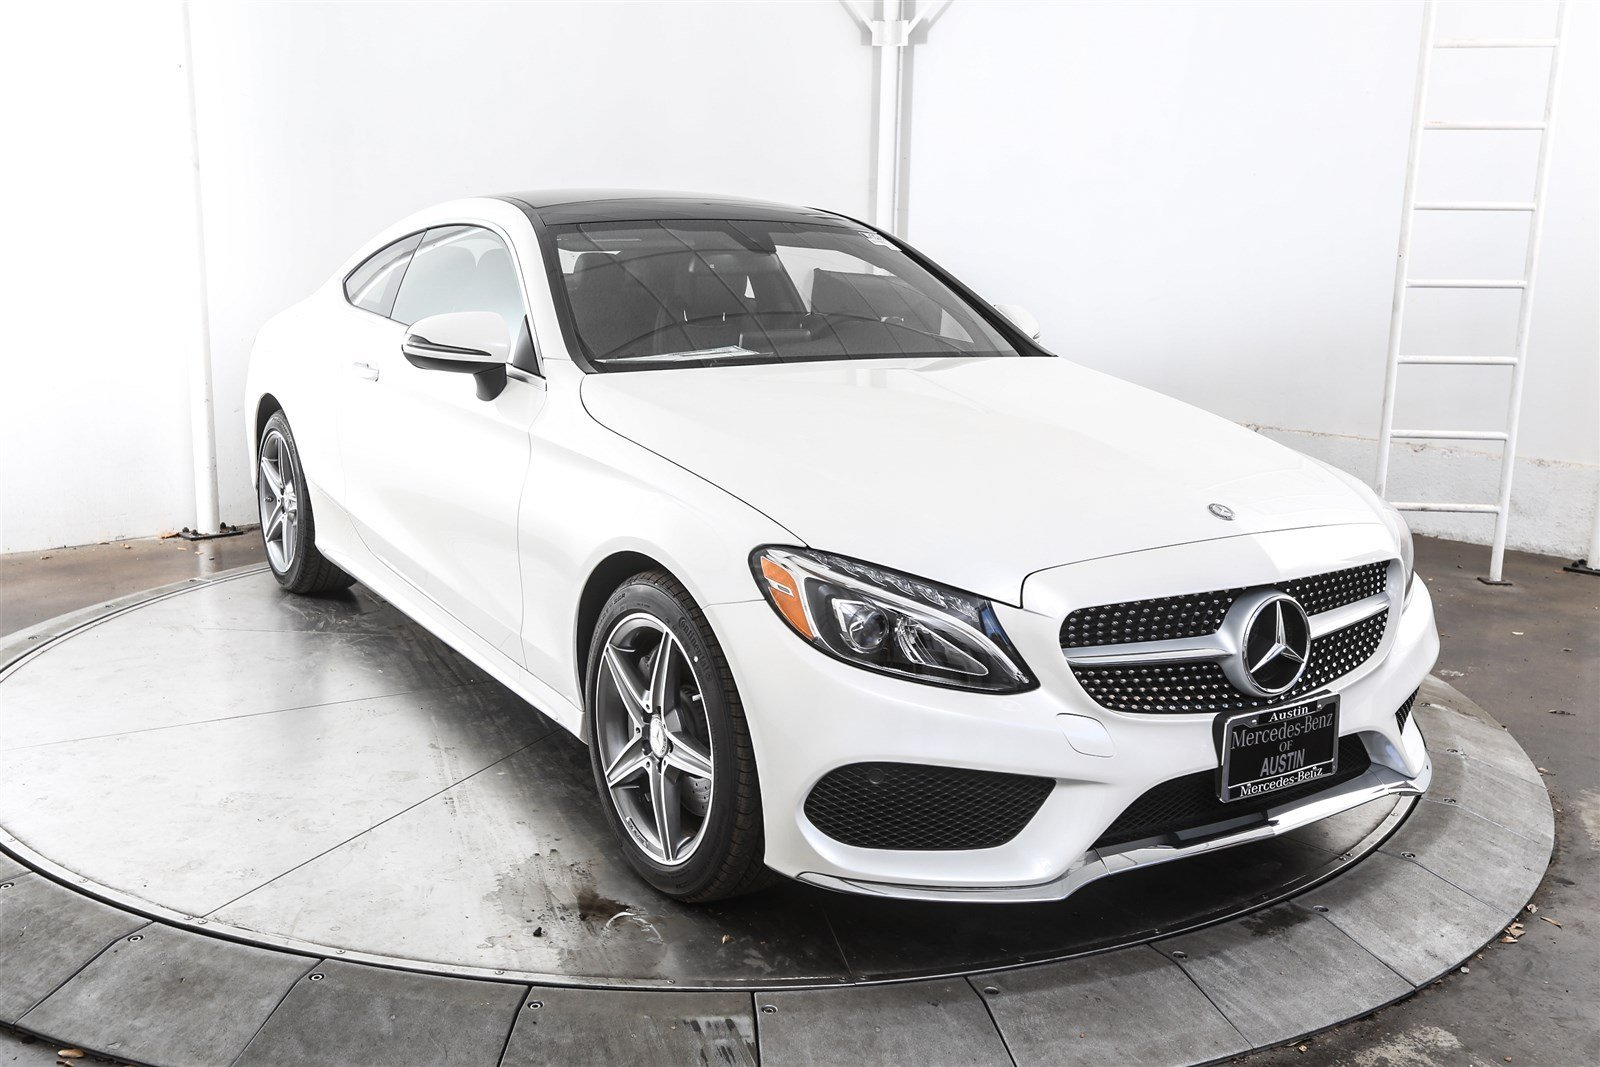 New 2017 mercedes benz c class c 300 sport coupe in austin m56408 mercedes benz of austin - Mercedes benz c class sport coupe ...